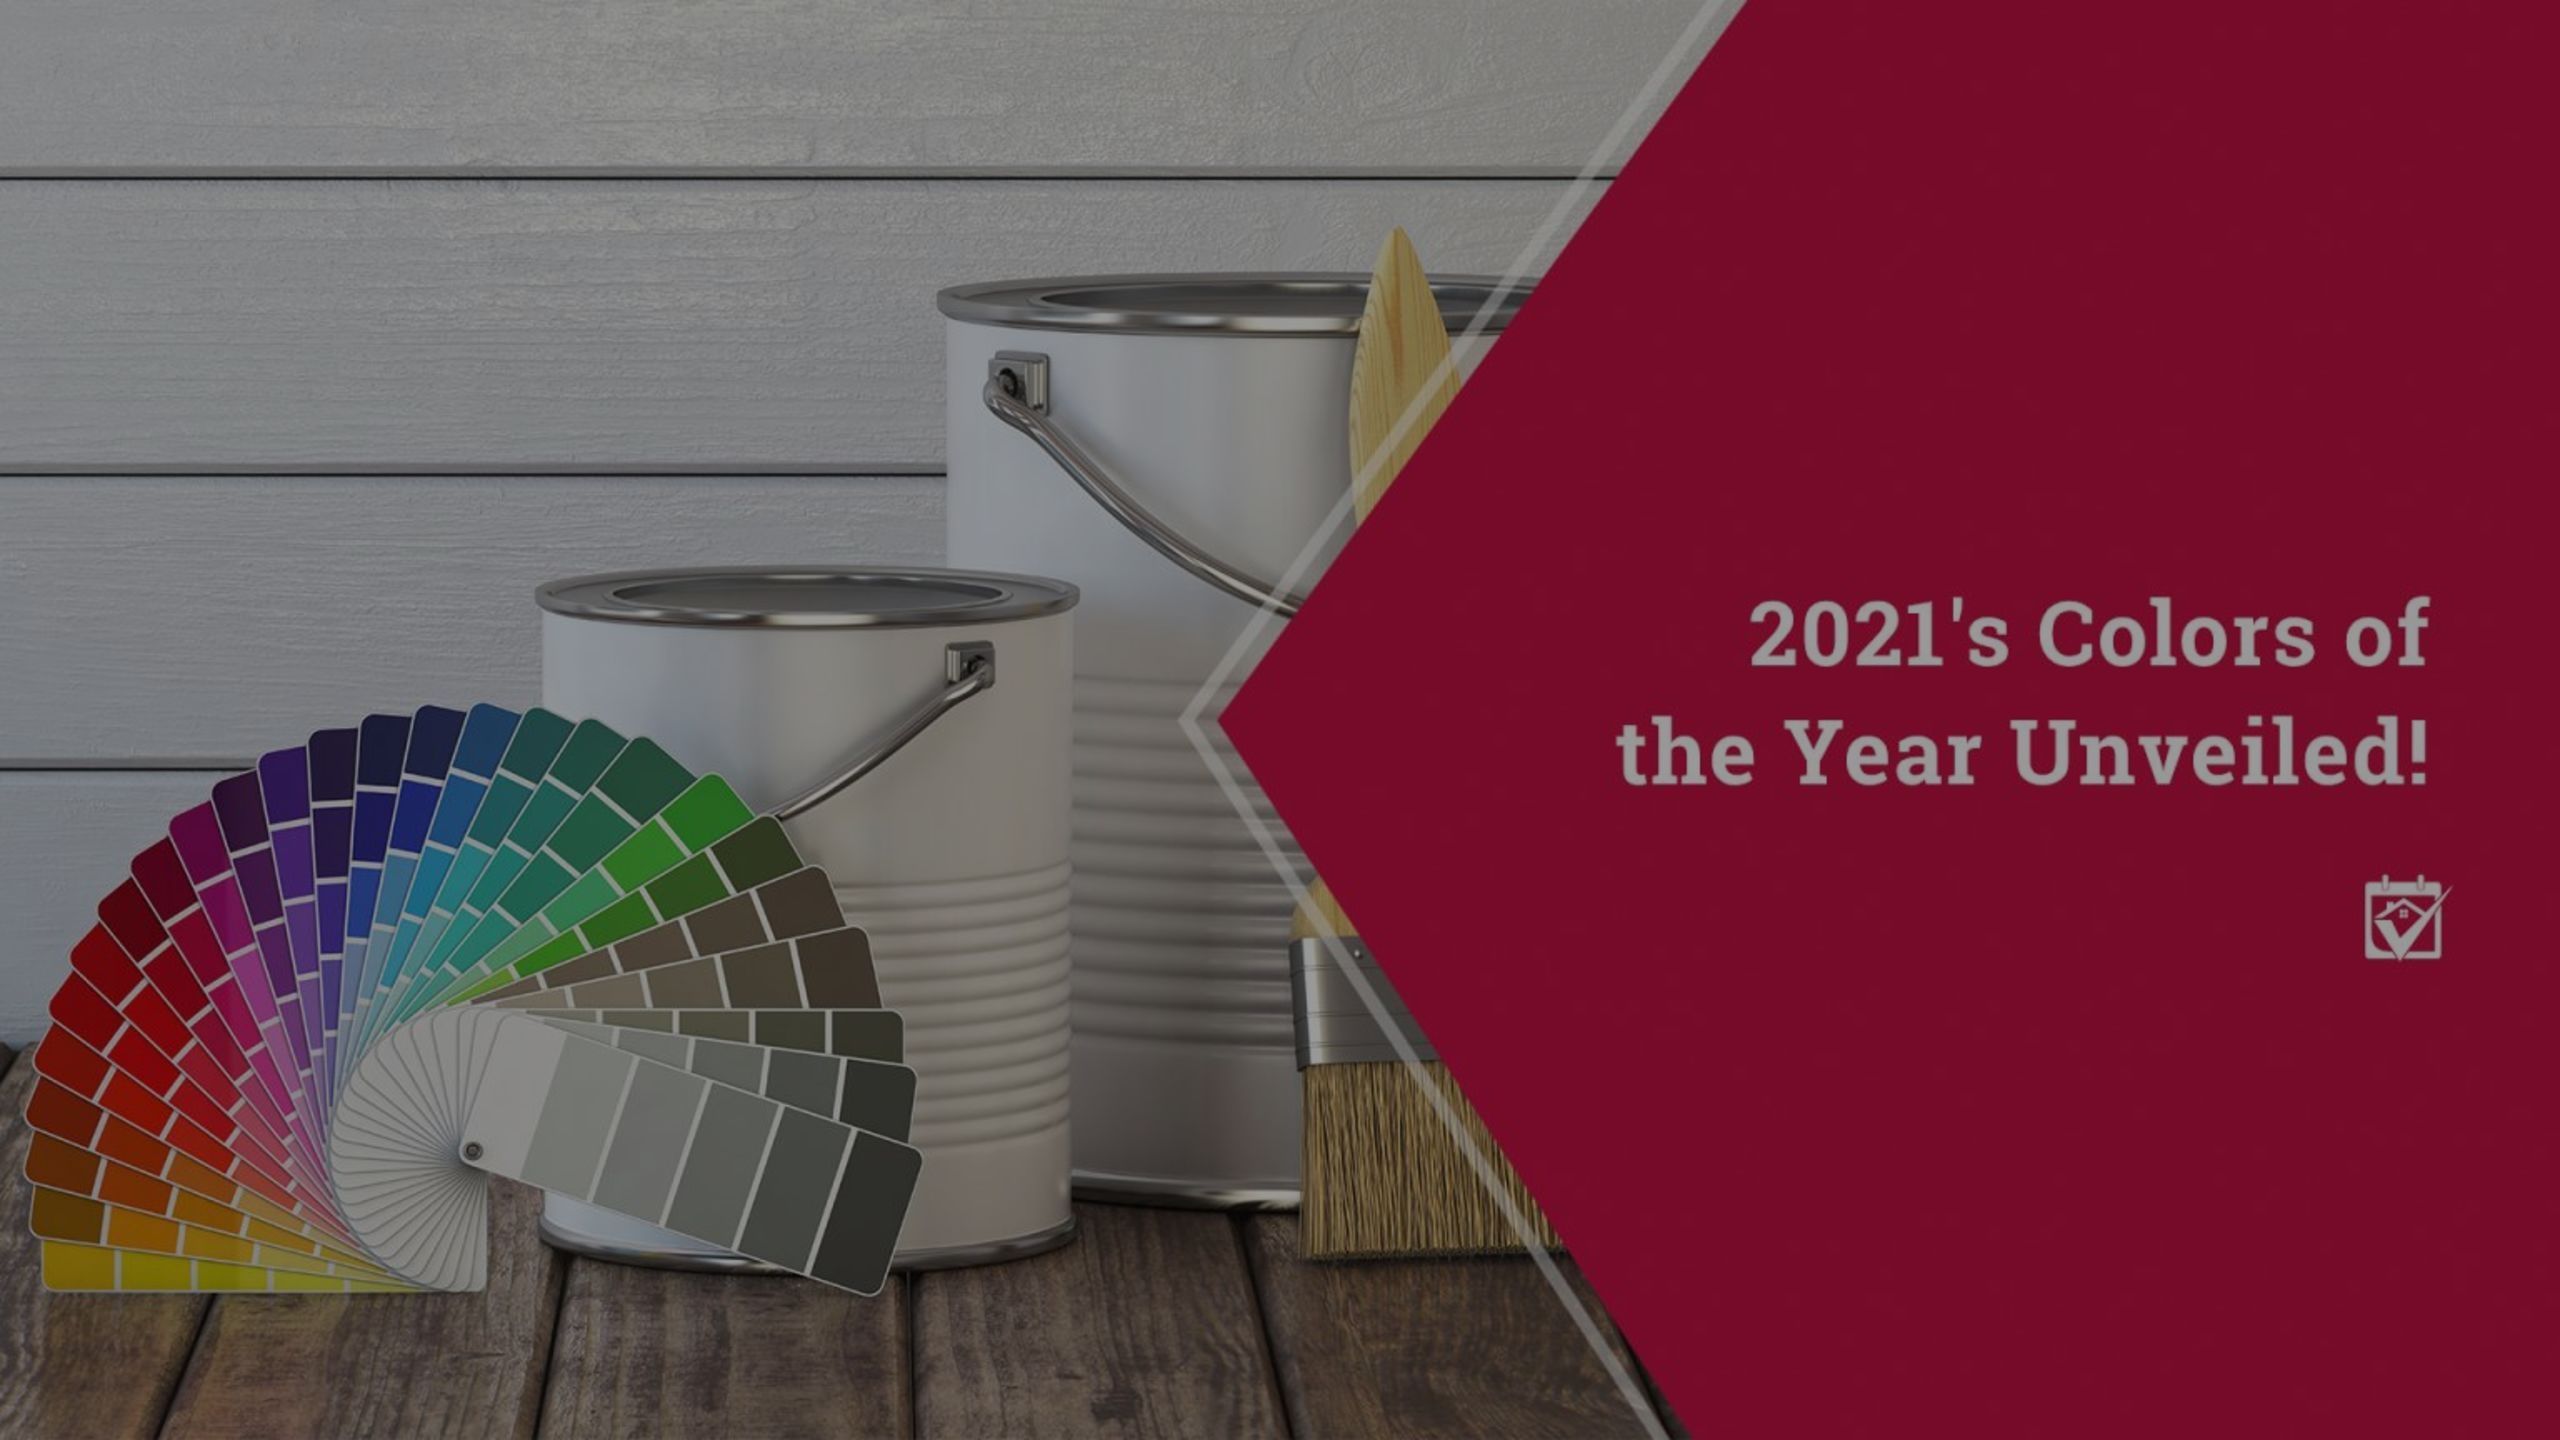 2021's Colors of the Year Unveiled!